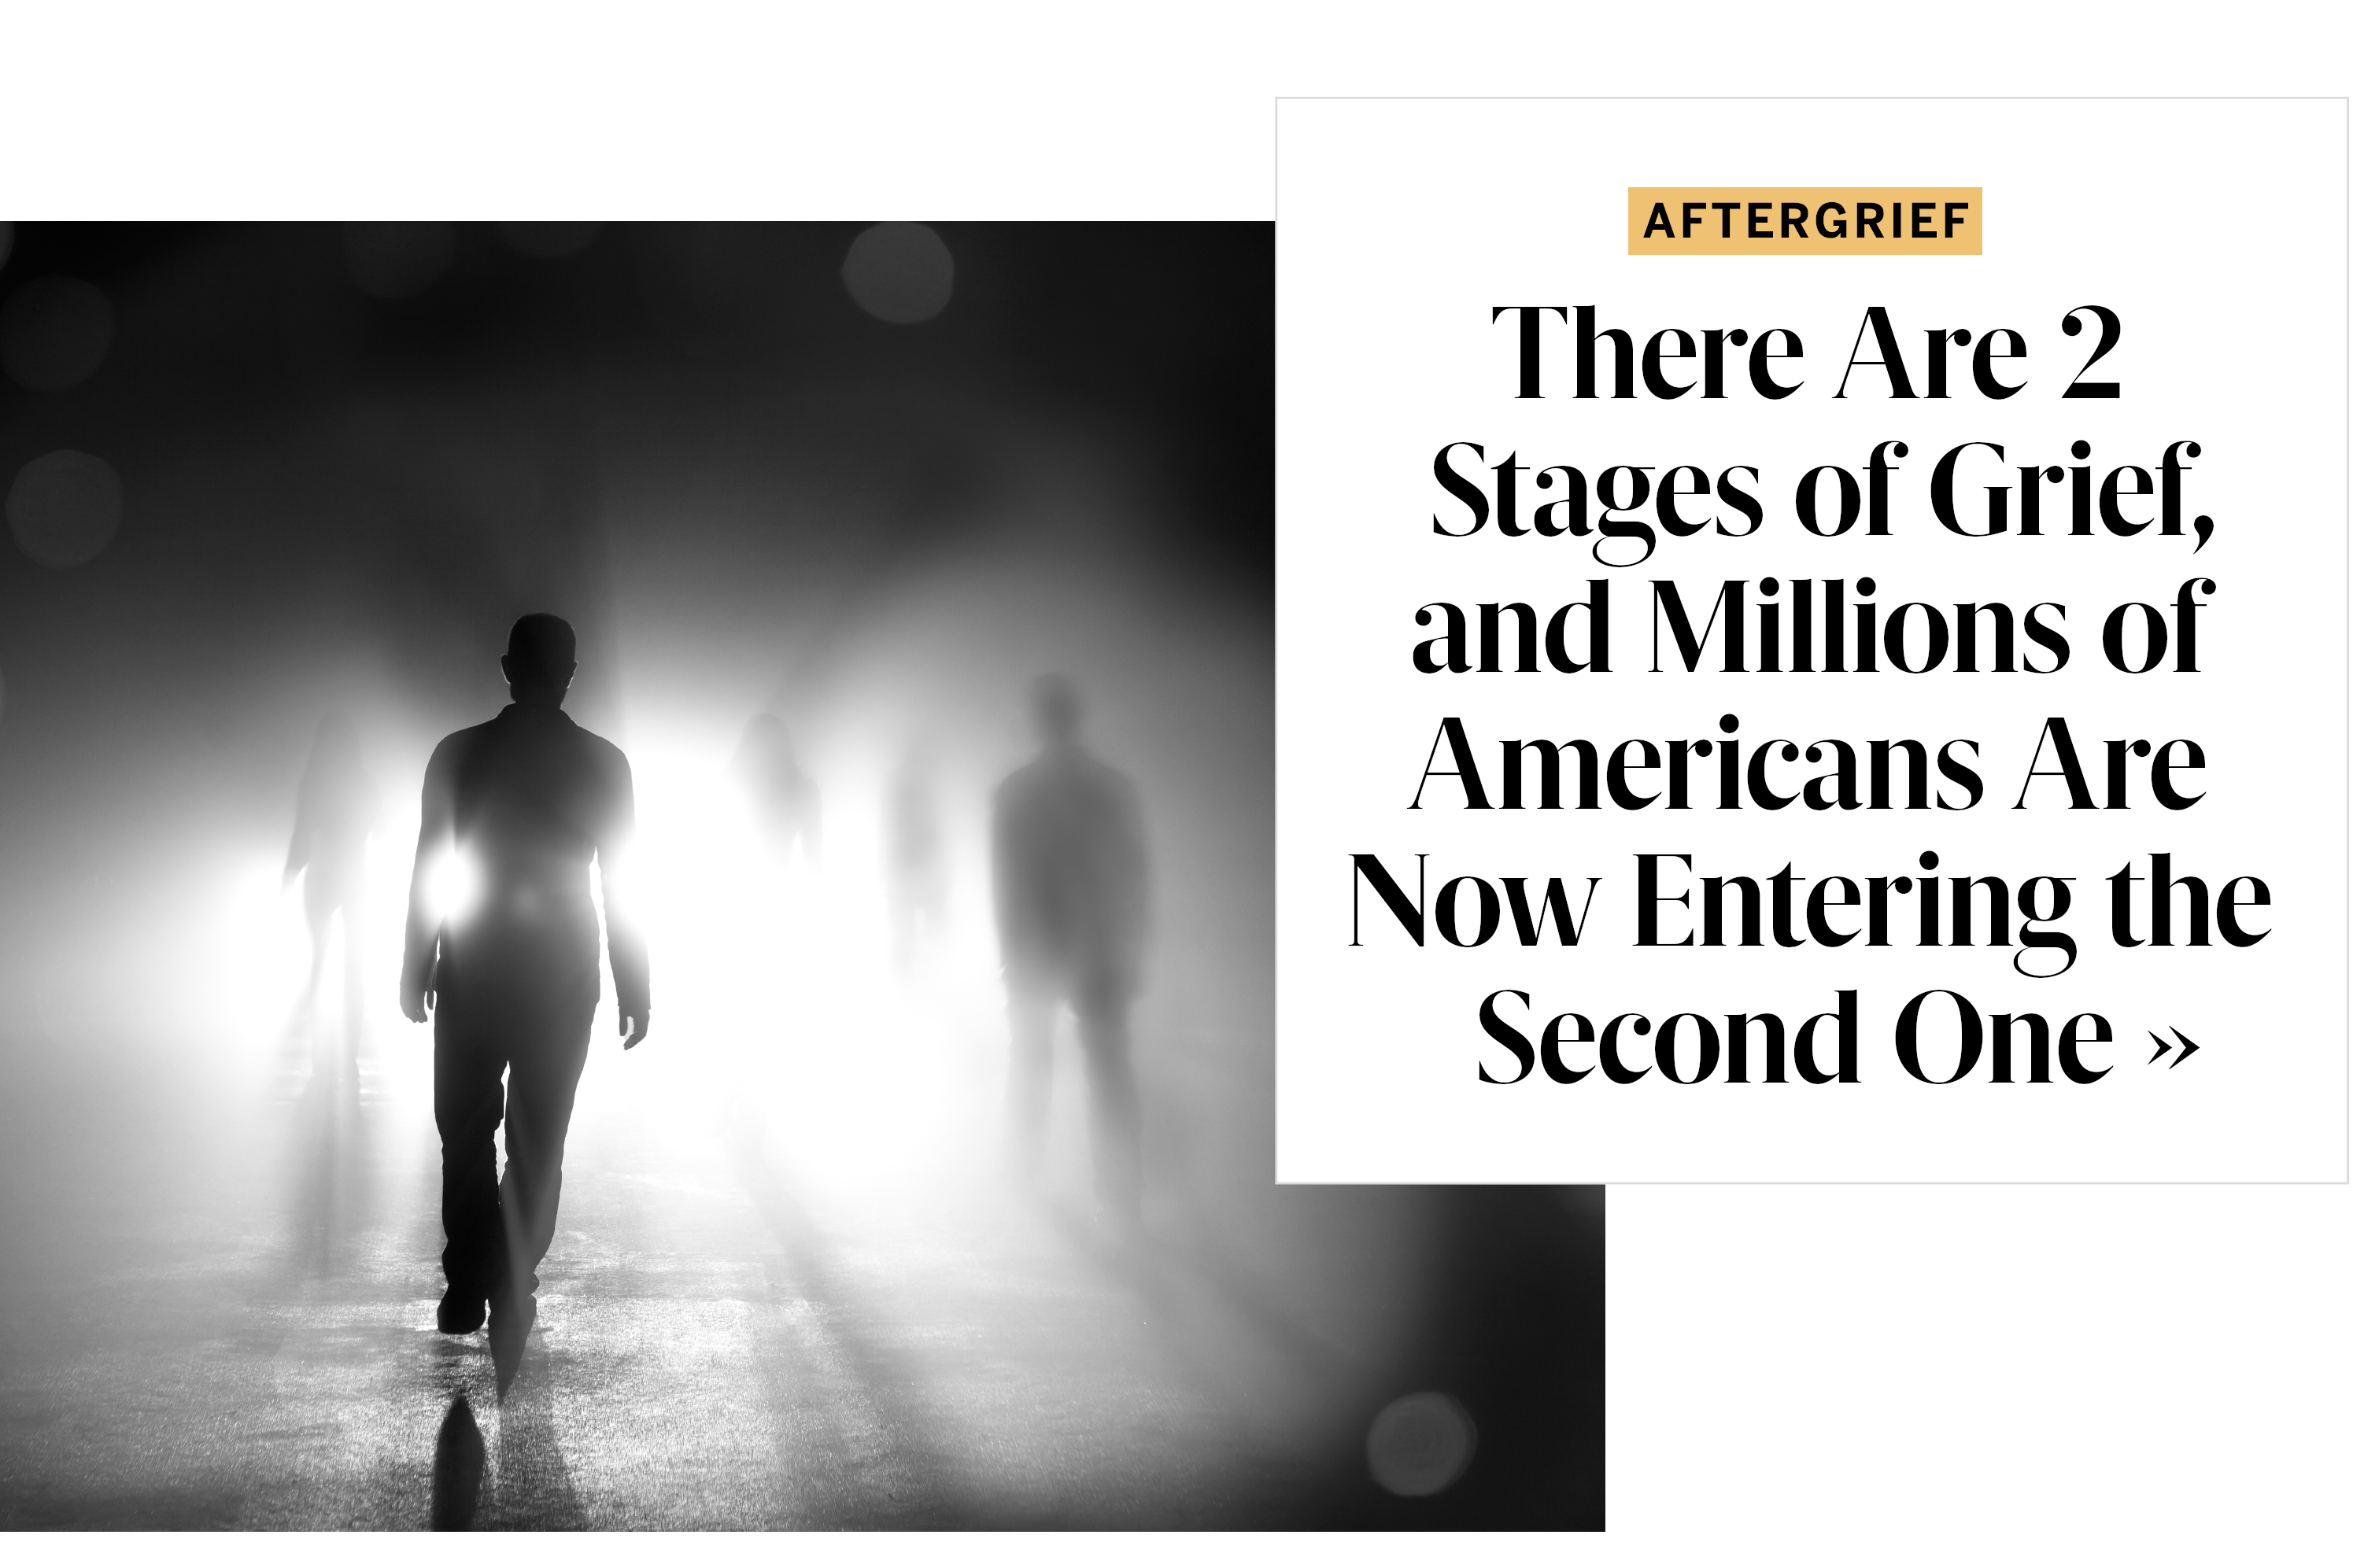 There Are 2 Stages of Grief, and Millions of Americans Are Now Entering the Second One—Here's What That Means